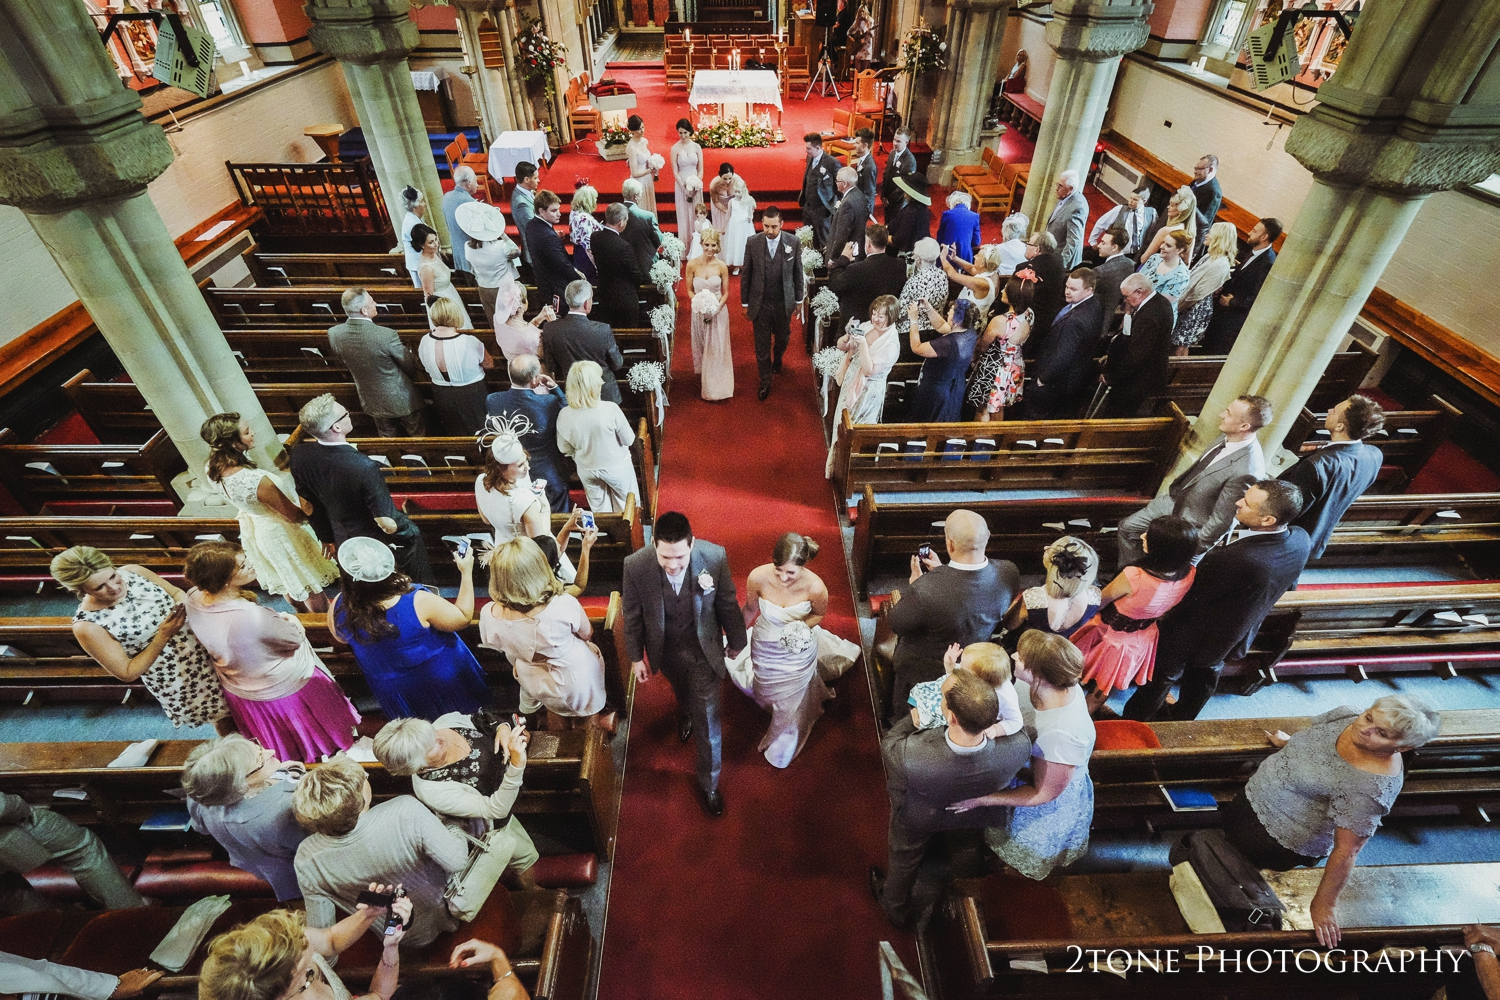 Standing looking from the gallery down into the church as Laura and Simon walk back down the aisle together gives us a different view of the scene that is normally seen. Guests standing watching, capturing the moment on their own cameras, the bridal party processing behind the newlyweds really capturing the mood of the moment.